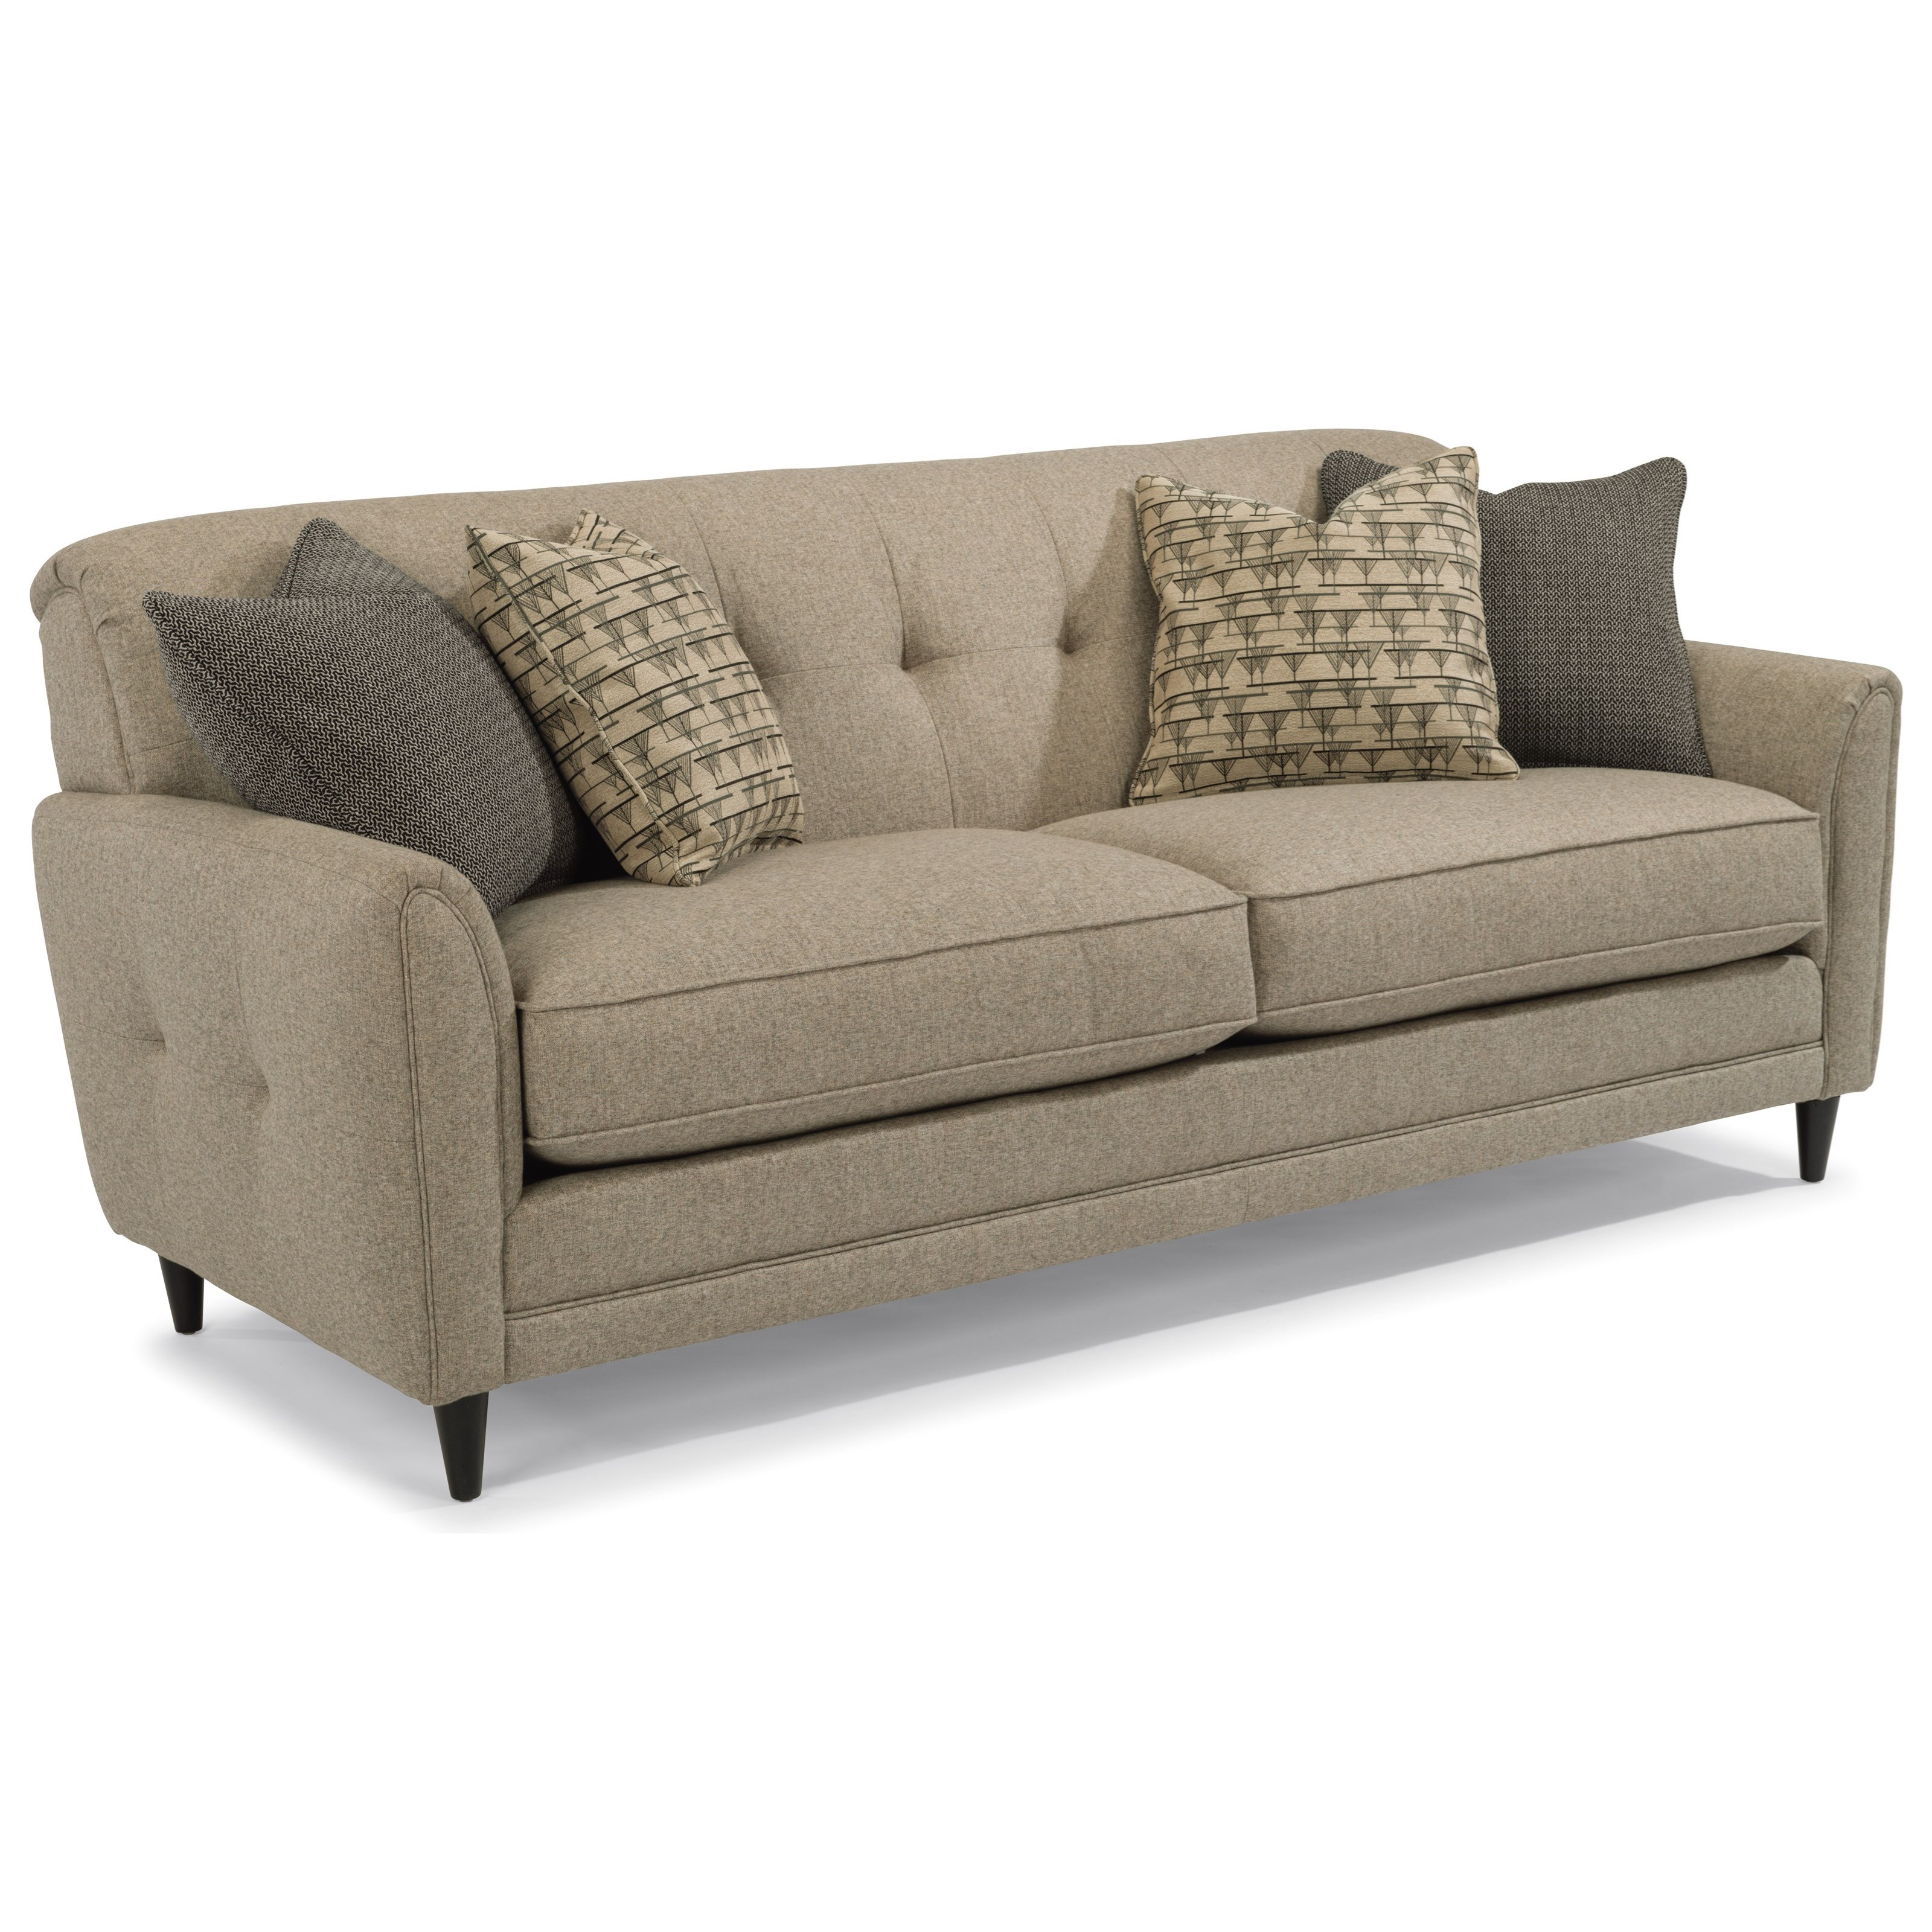 flexsteel sofa arms couch stationary rolled sheelysfurniture couches livingroomgoals with pin patterson